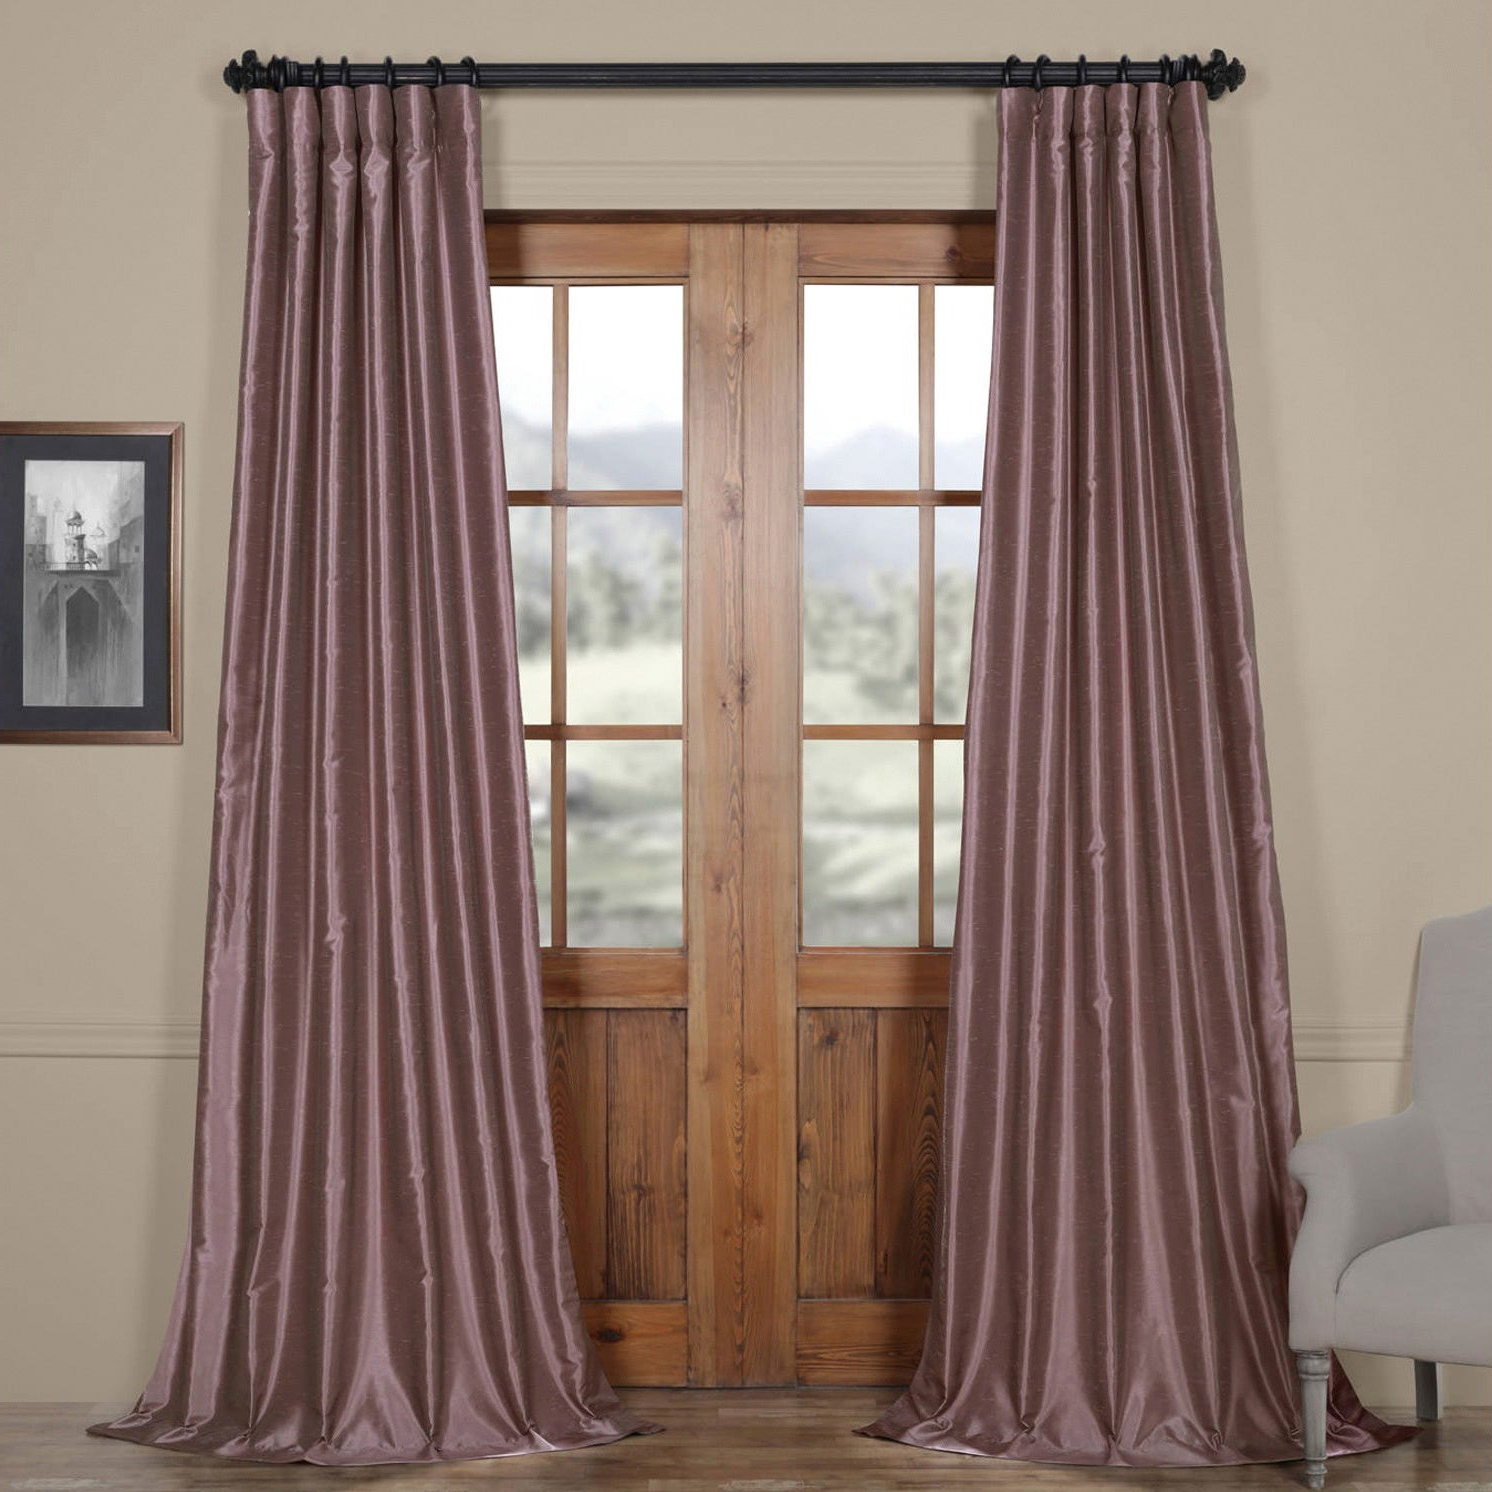 True Blackout Vintage Textured Faux Silk Curtain Panels Throughout Most Current Eff Smoky Plum Vintage Faux Dupioni Silk Curtain Panel (View 15 of 20)